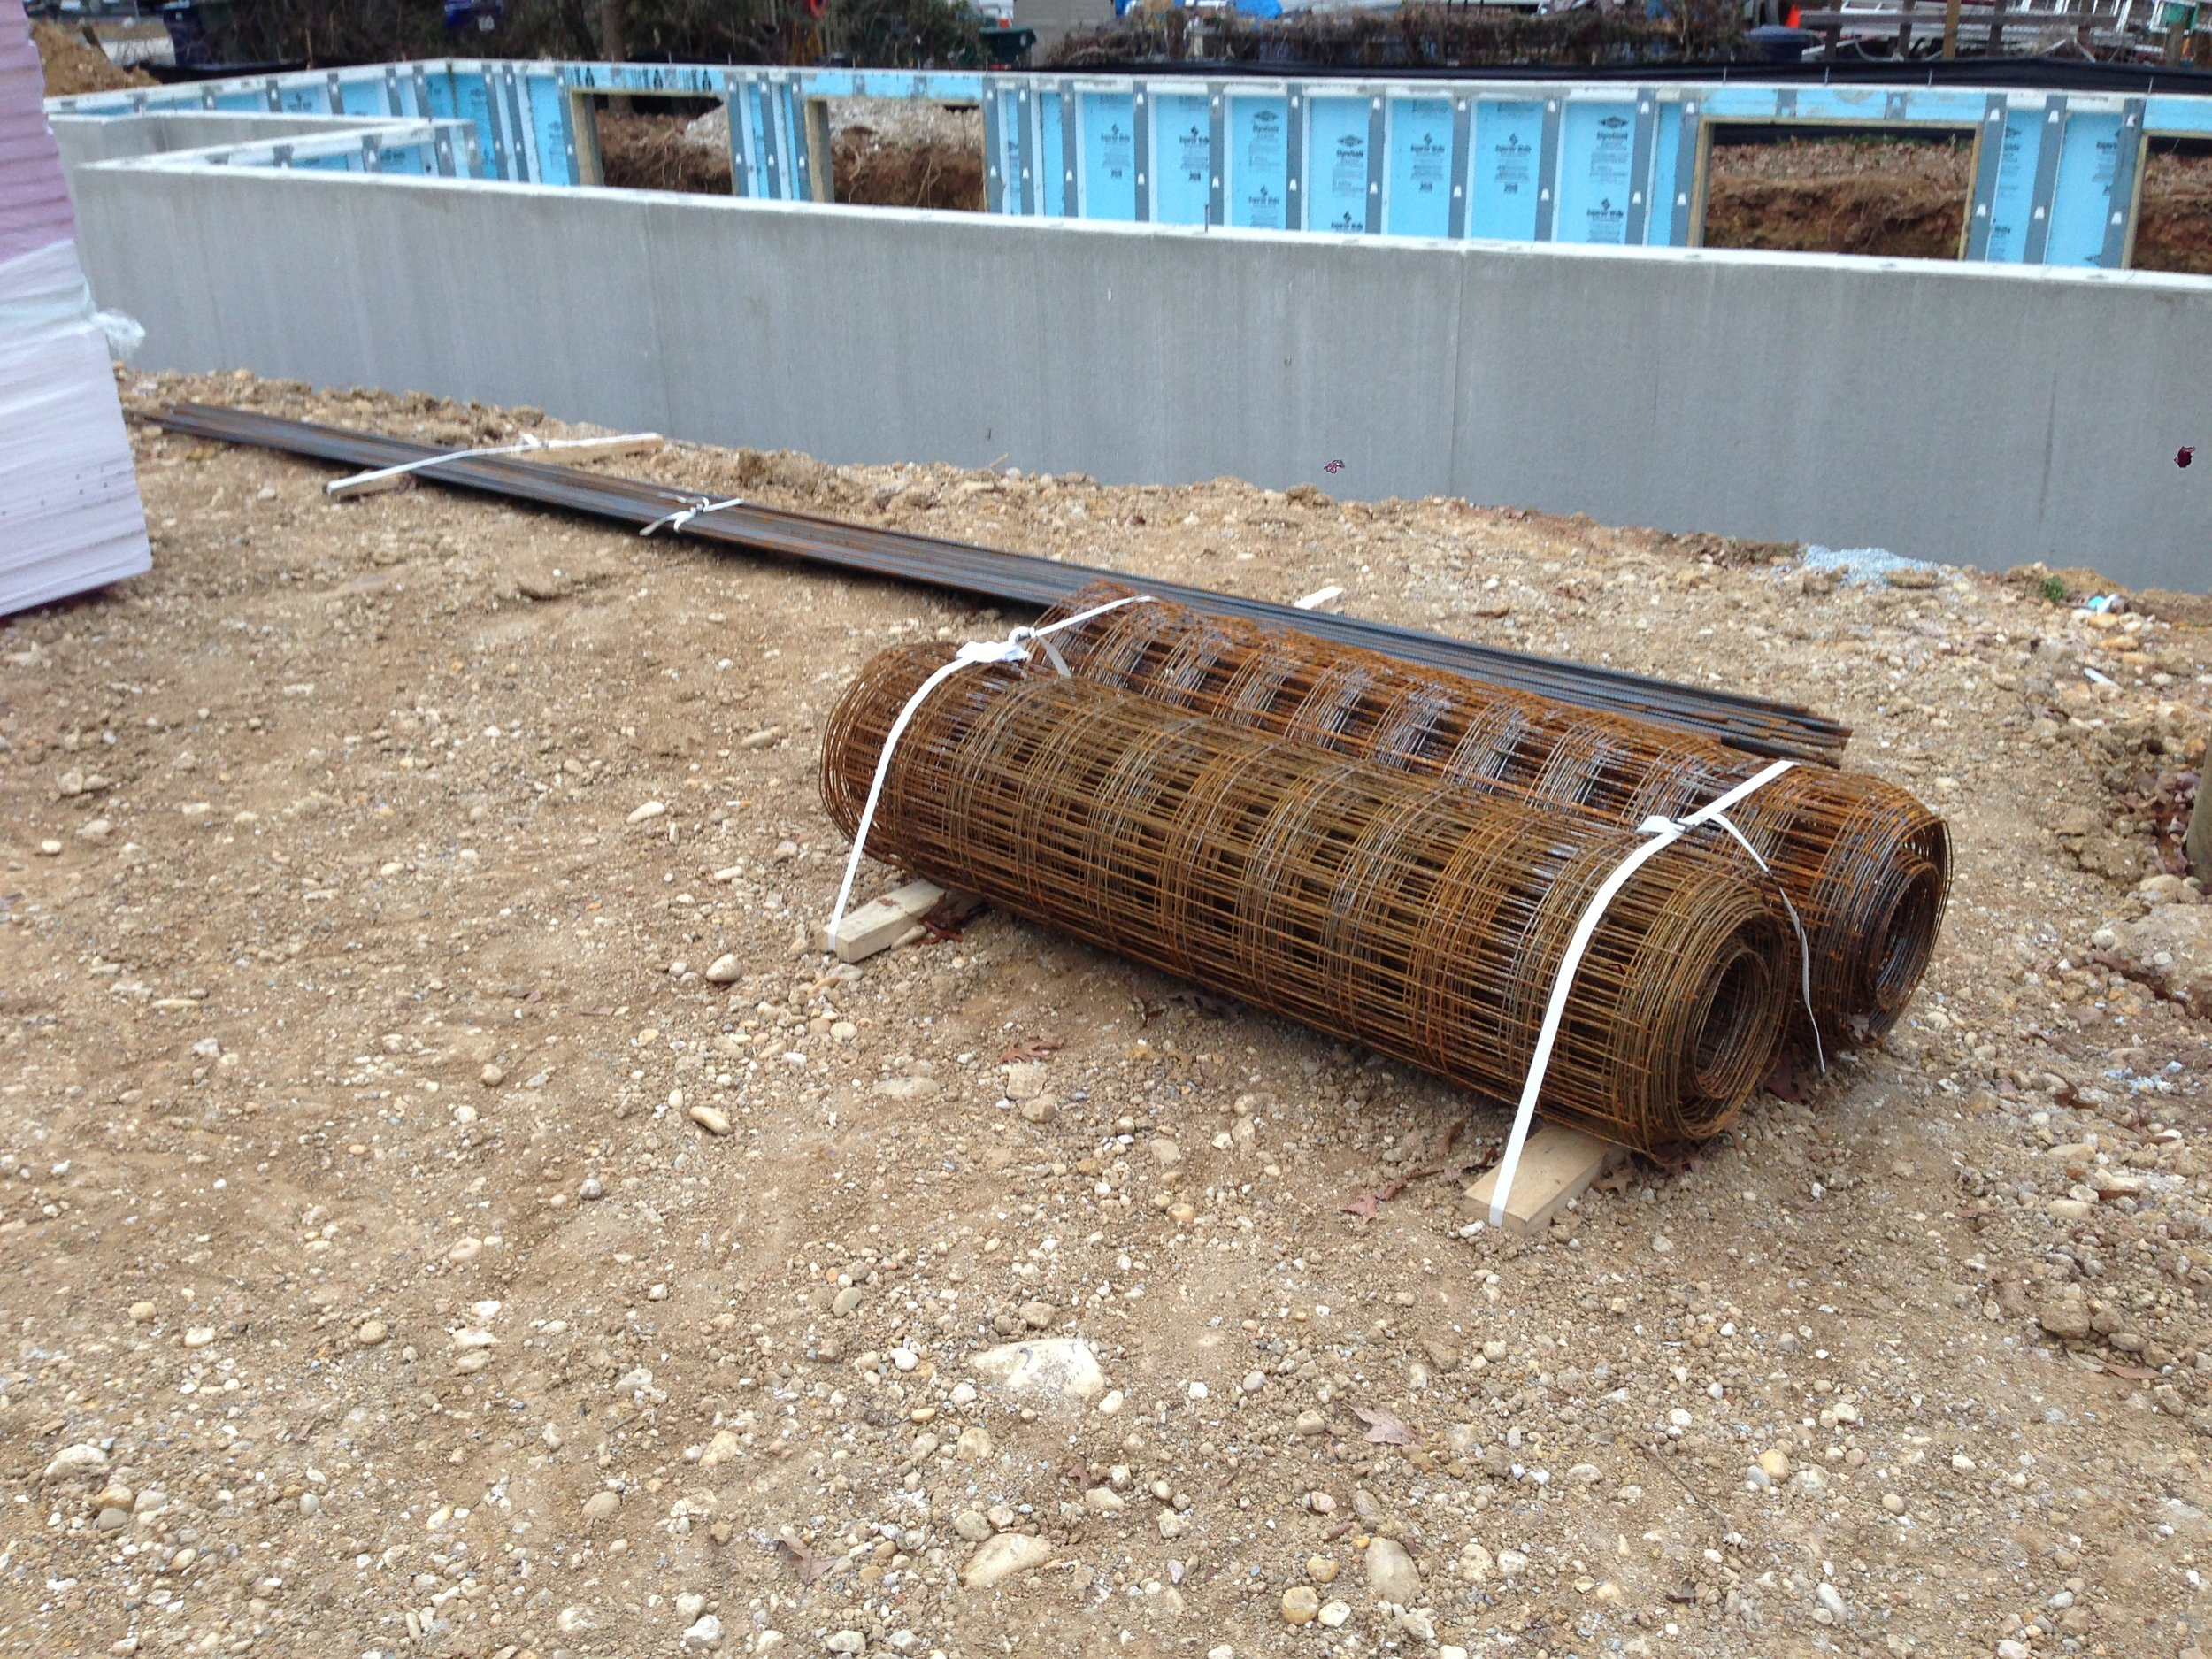 Some materials for under the slab. R10 insulation on the left, rebar for the footing and steel mesh for the slab.